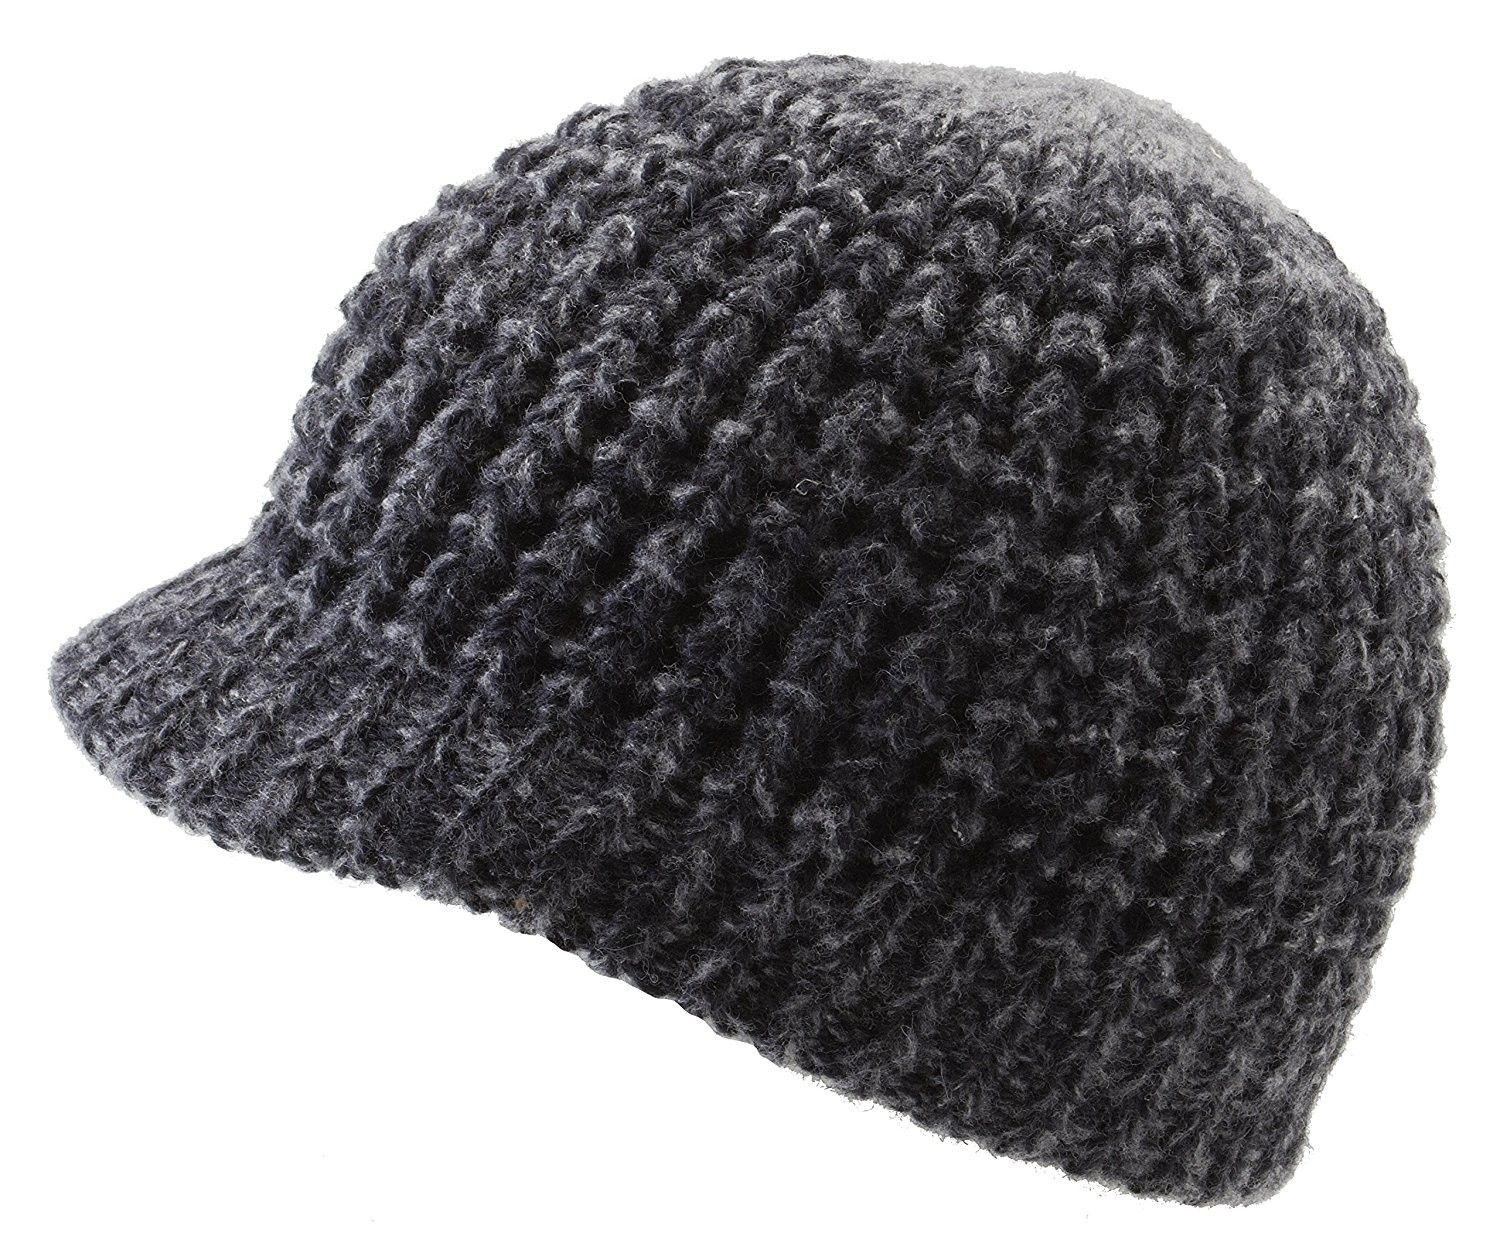 31d824e0291 Classic Men s Warm Winter Hats Thick Knit Cuff Beanie Cap With Lining Black  C712MRGYO67